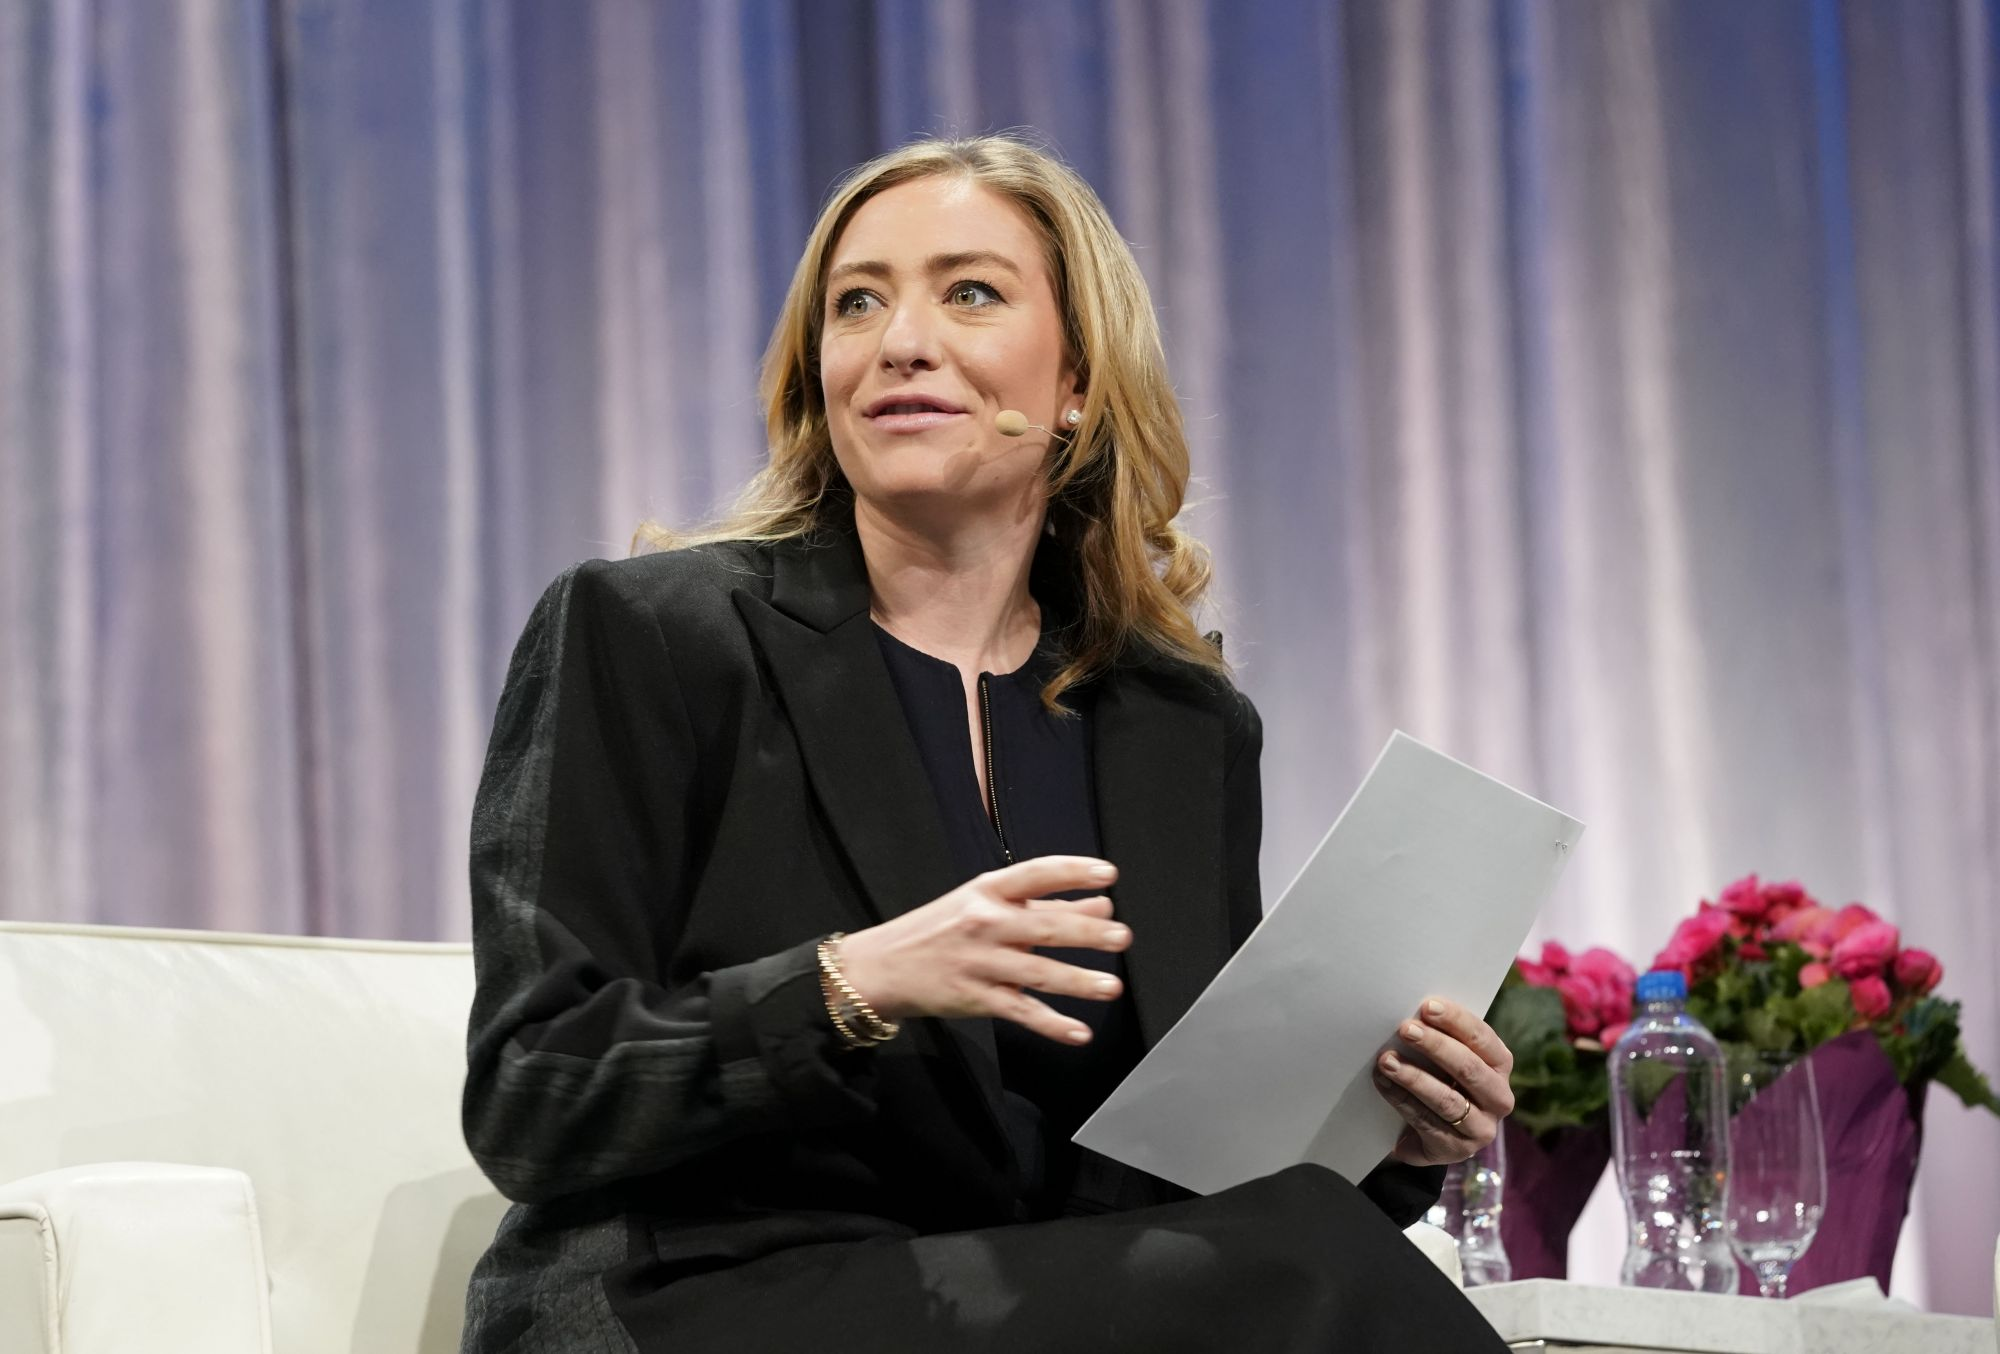 SAN JOSE, CALIFORNIA - FEBRUARY 22: Whitney Wolfe Herd, Founder and CEO of Bumble speaks on stage during keynote conversation at 2019 Watermark Conference for Women Silicon Valley at San Jose McEnery Convention Center on February 22, 2019 in San Jose, California. (Photo by Marla Aufmuth/WireImage)